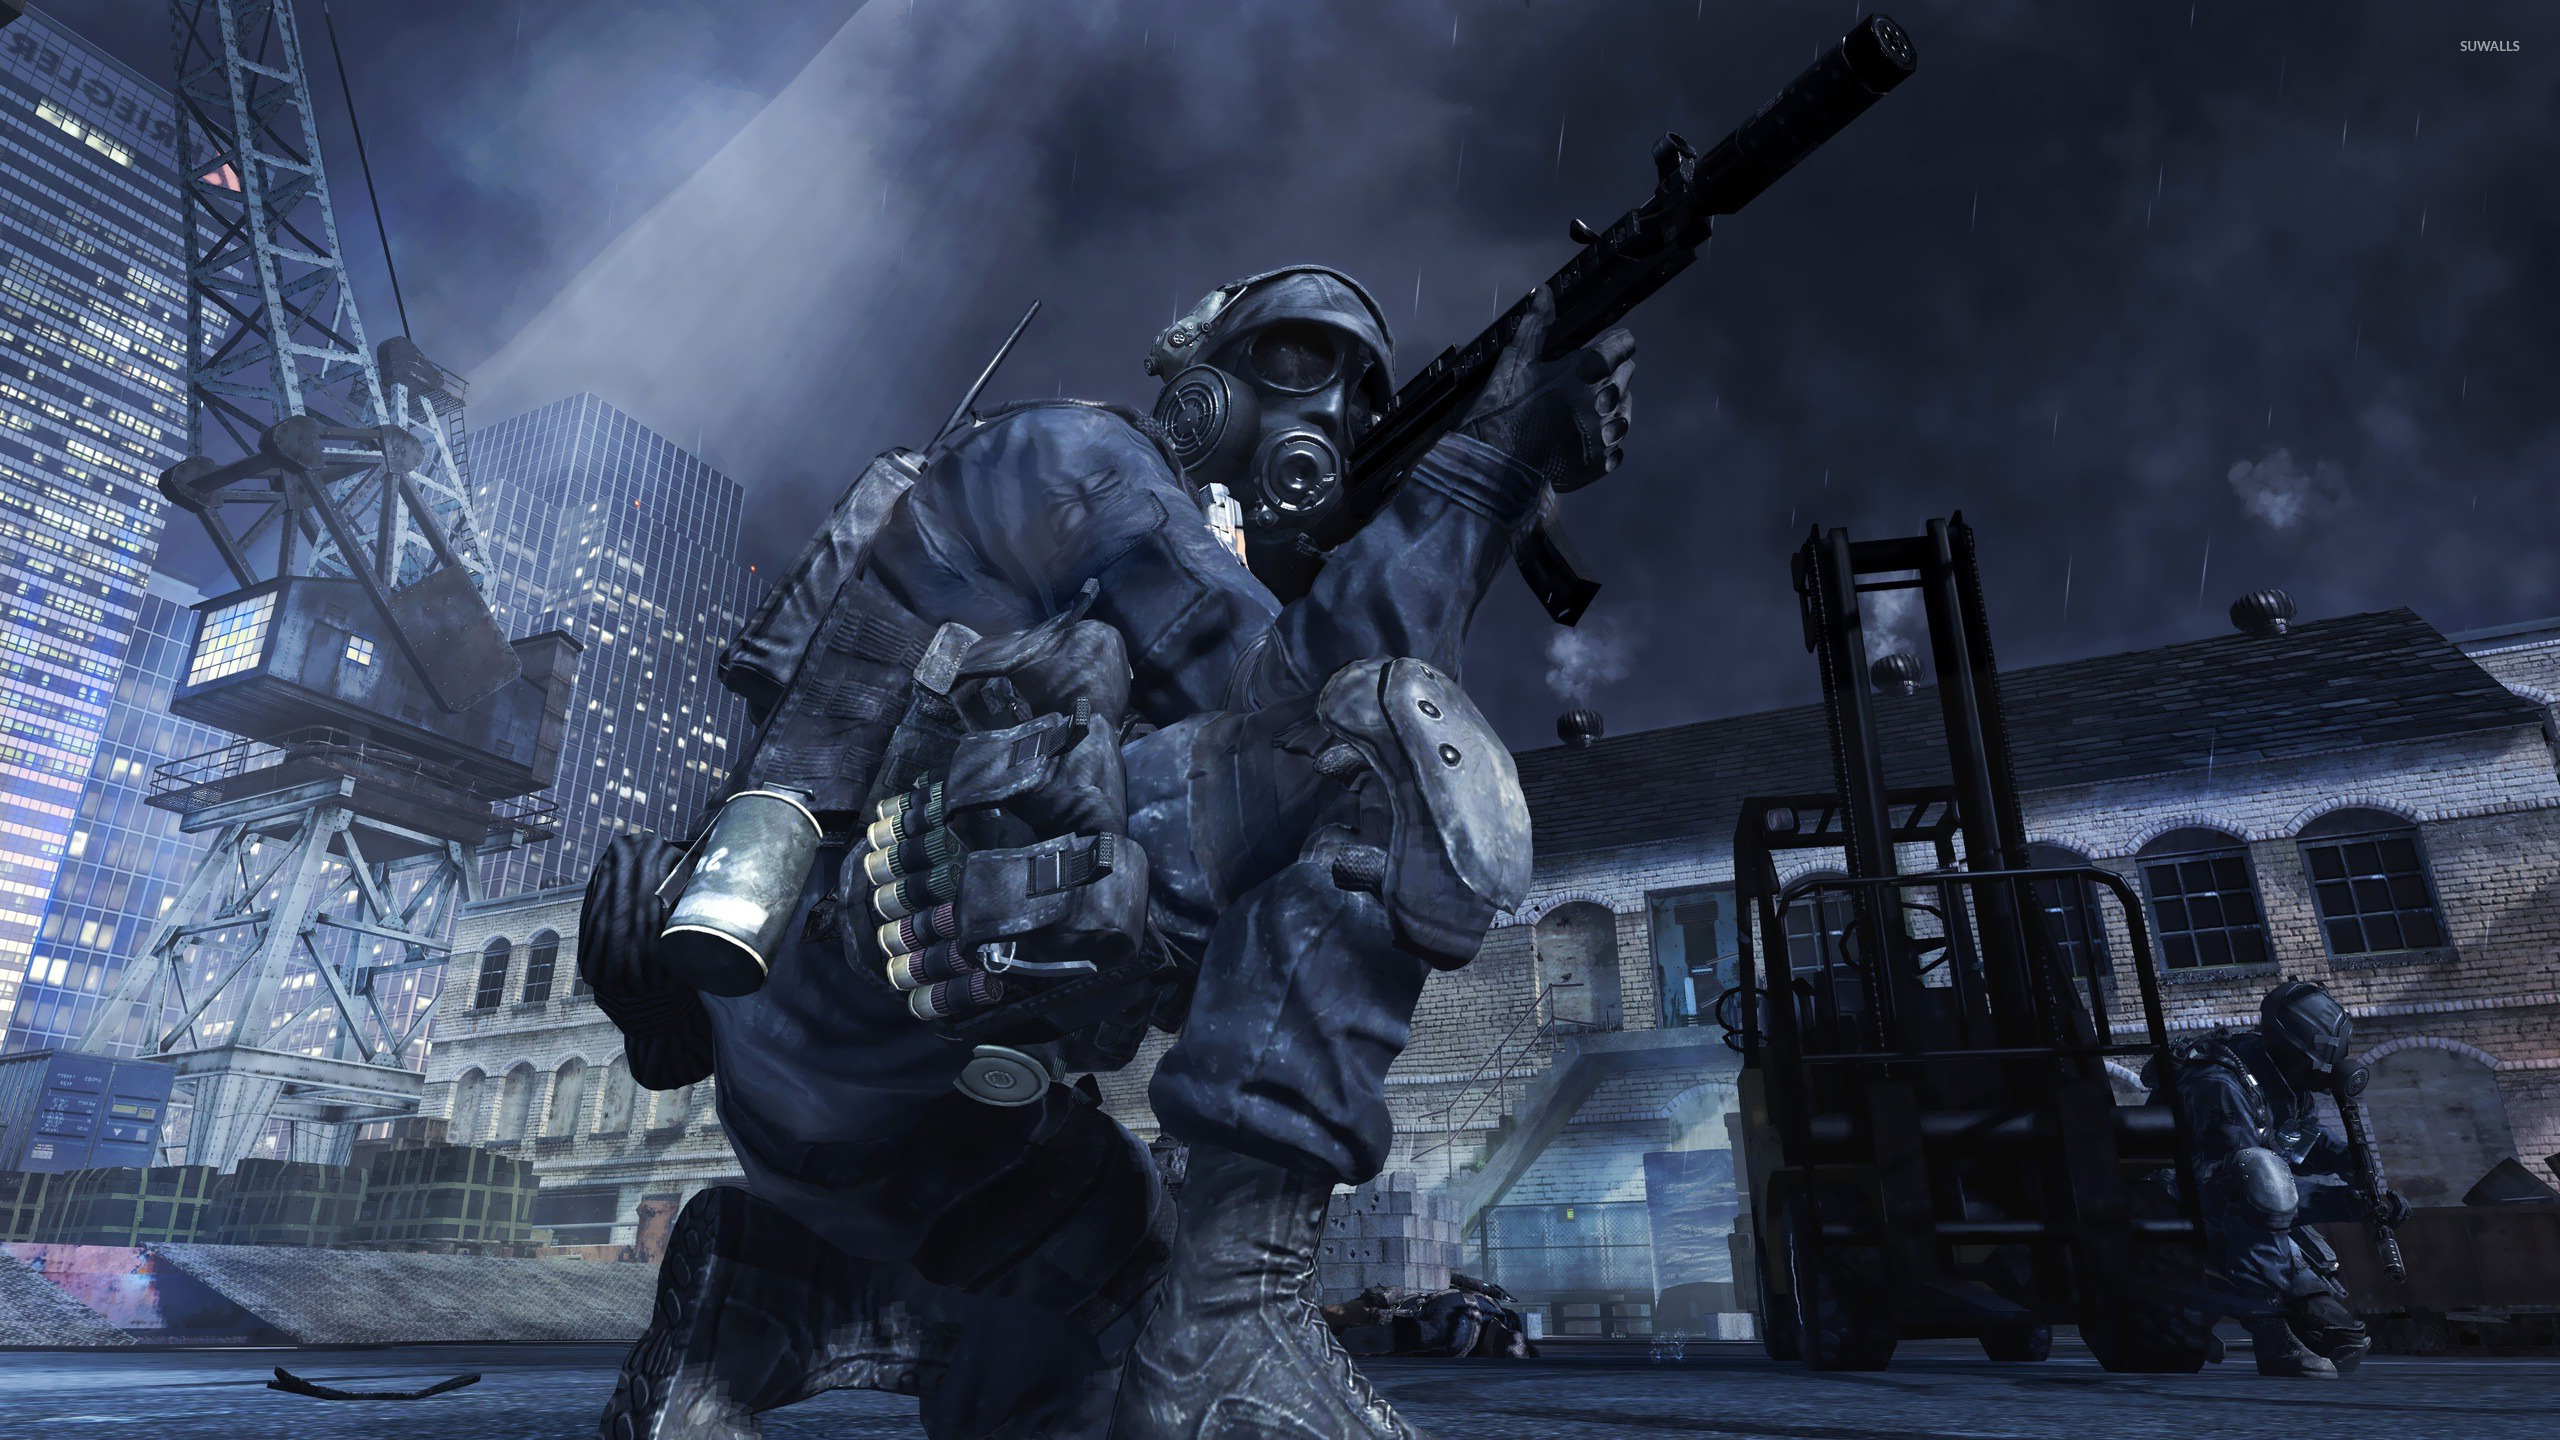 Call Of Duty Modern Warfare 3 13 Wallpaper Game Wallpapers